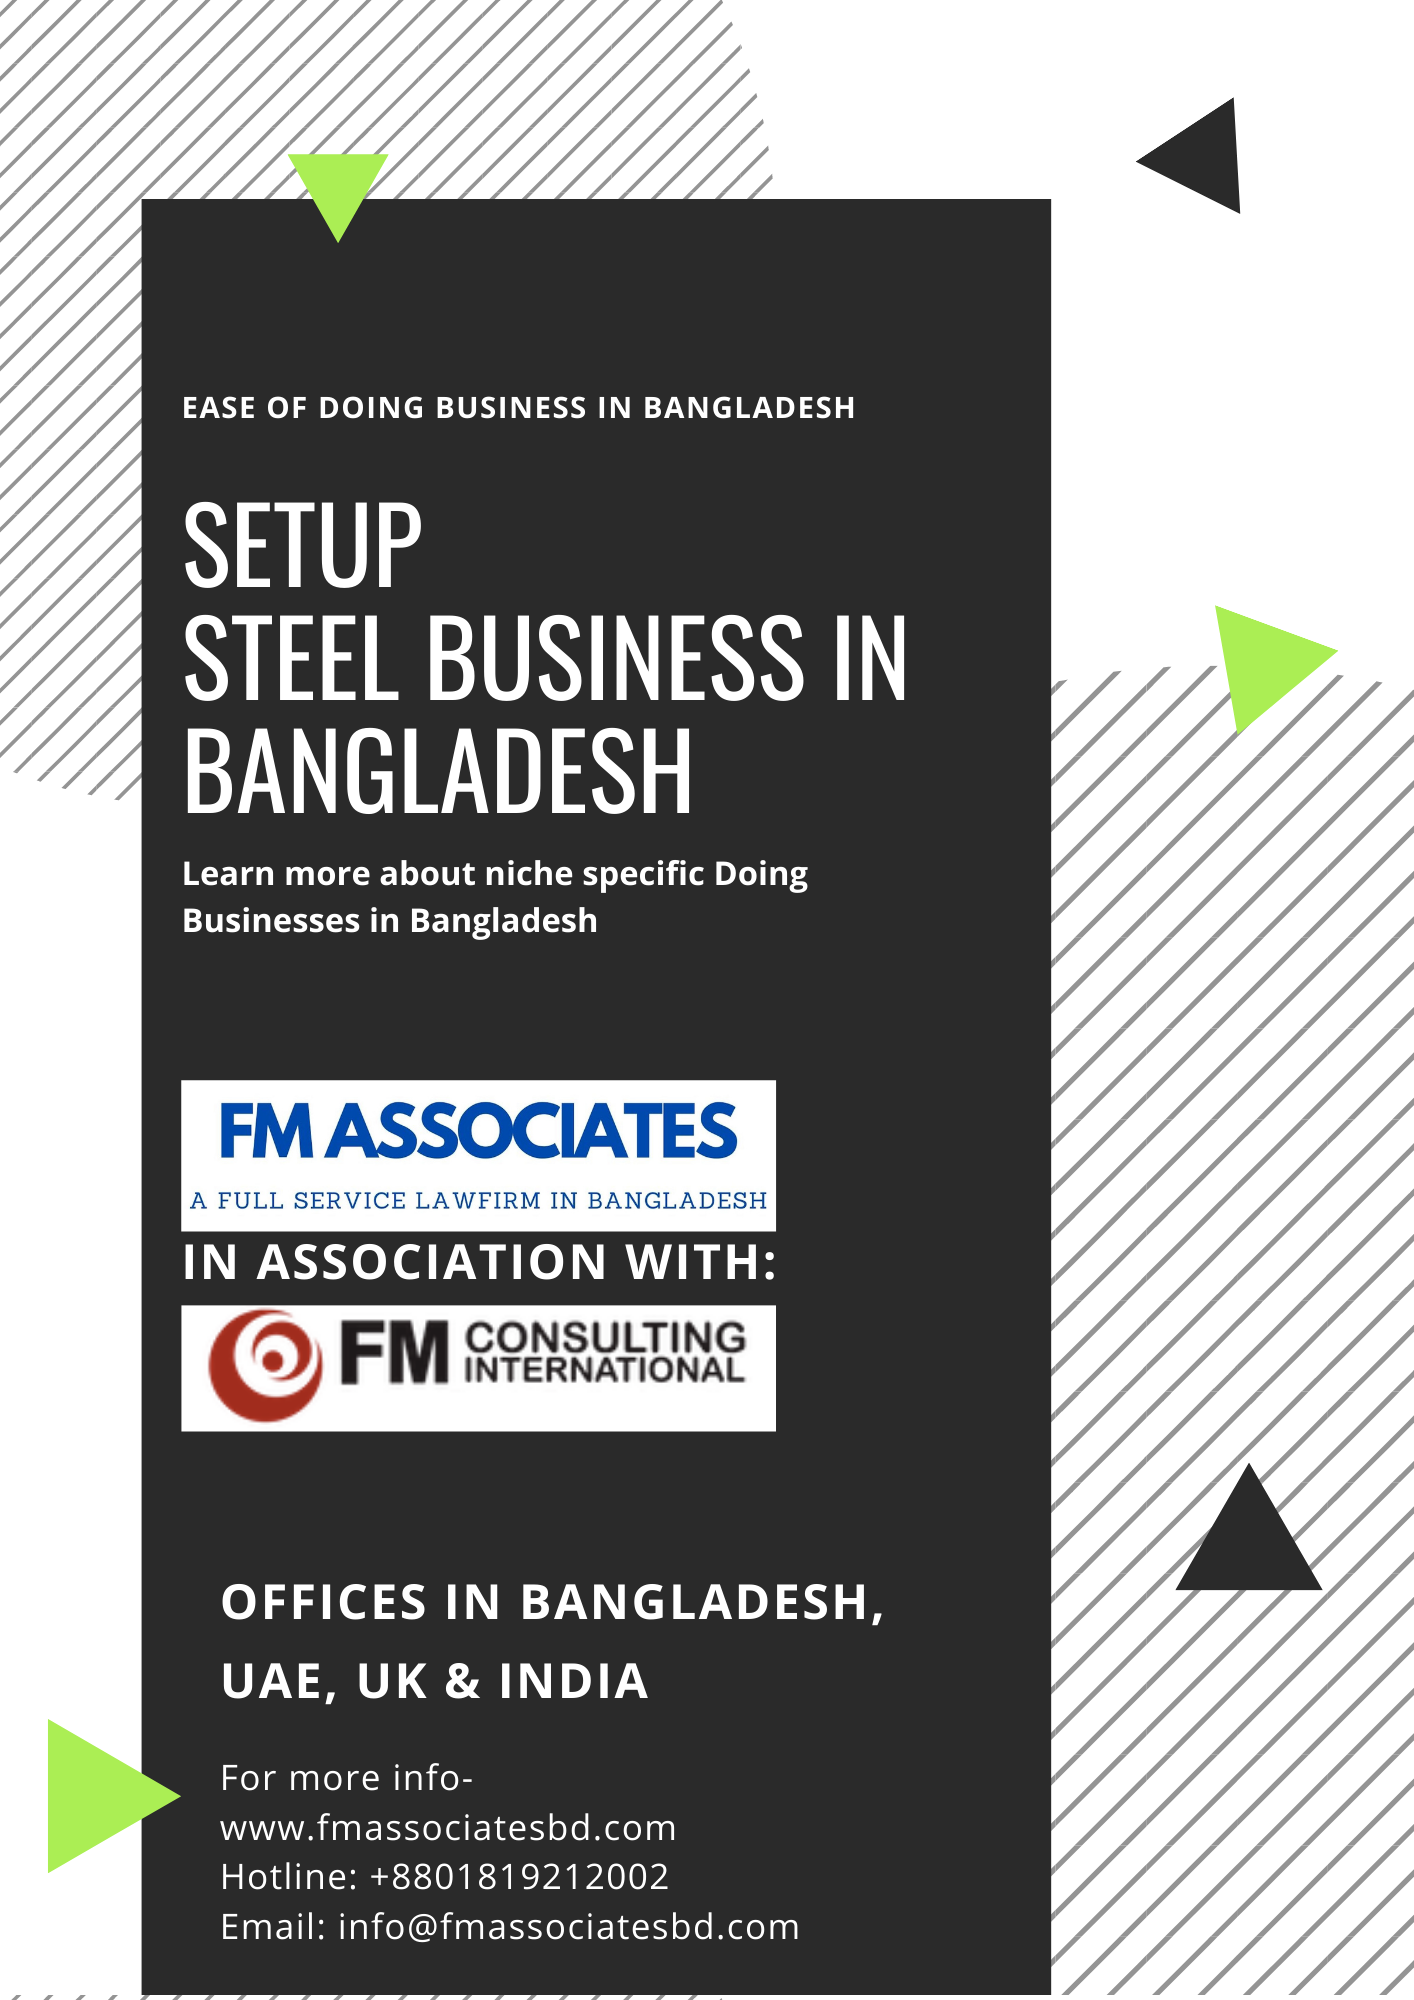 How to Setup Steel Business in Bangladesh